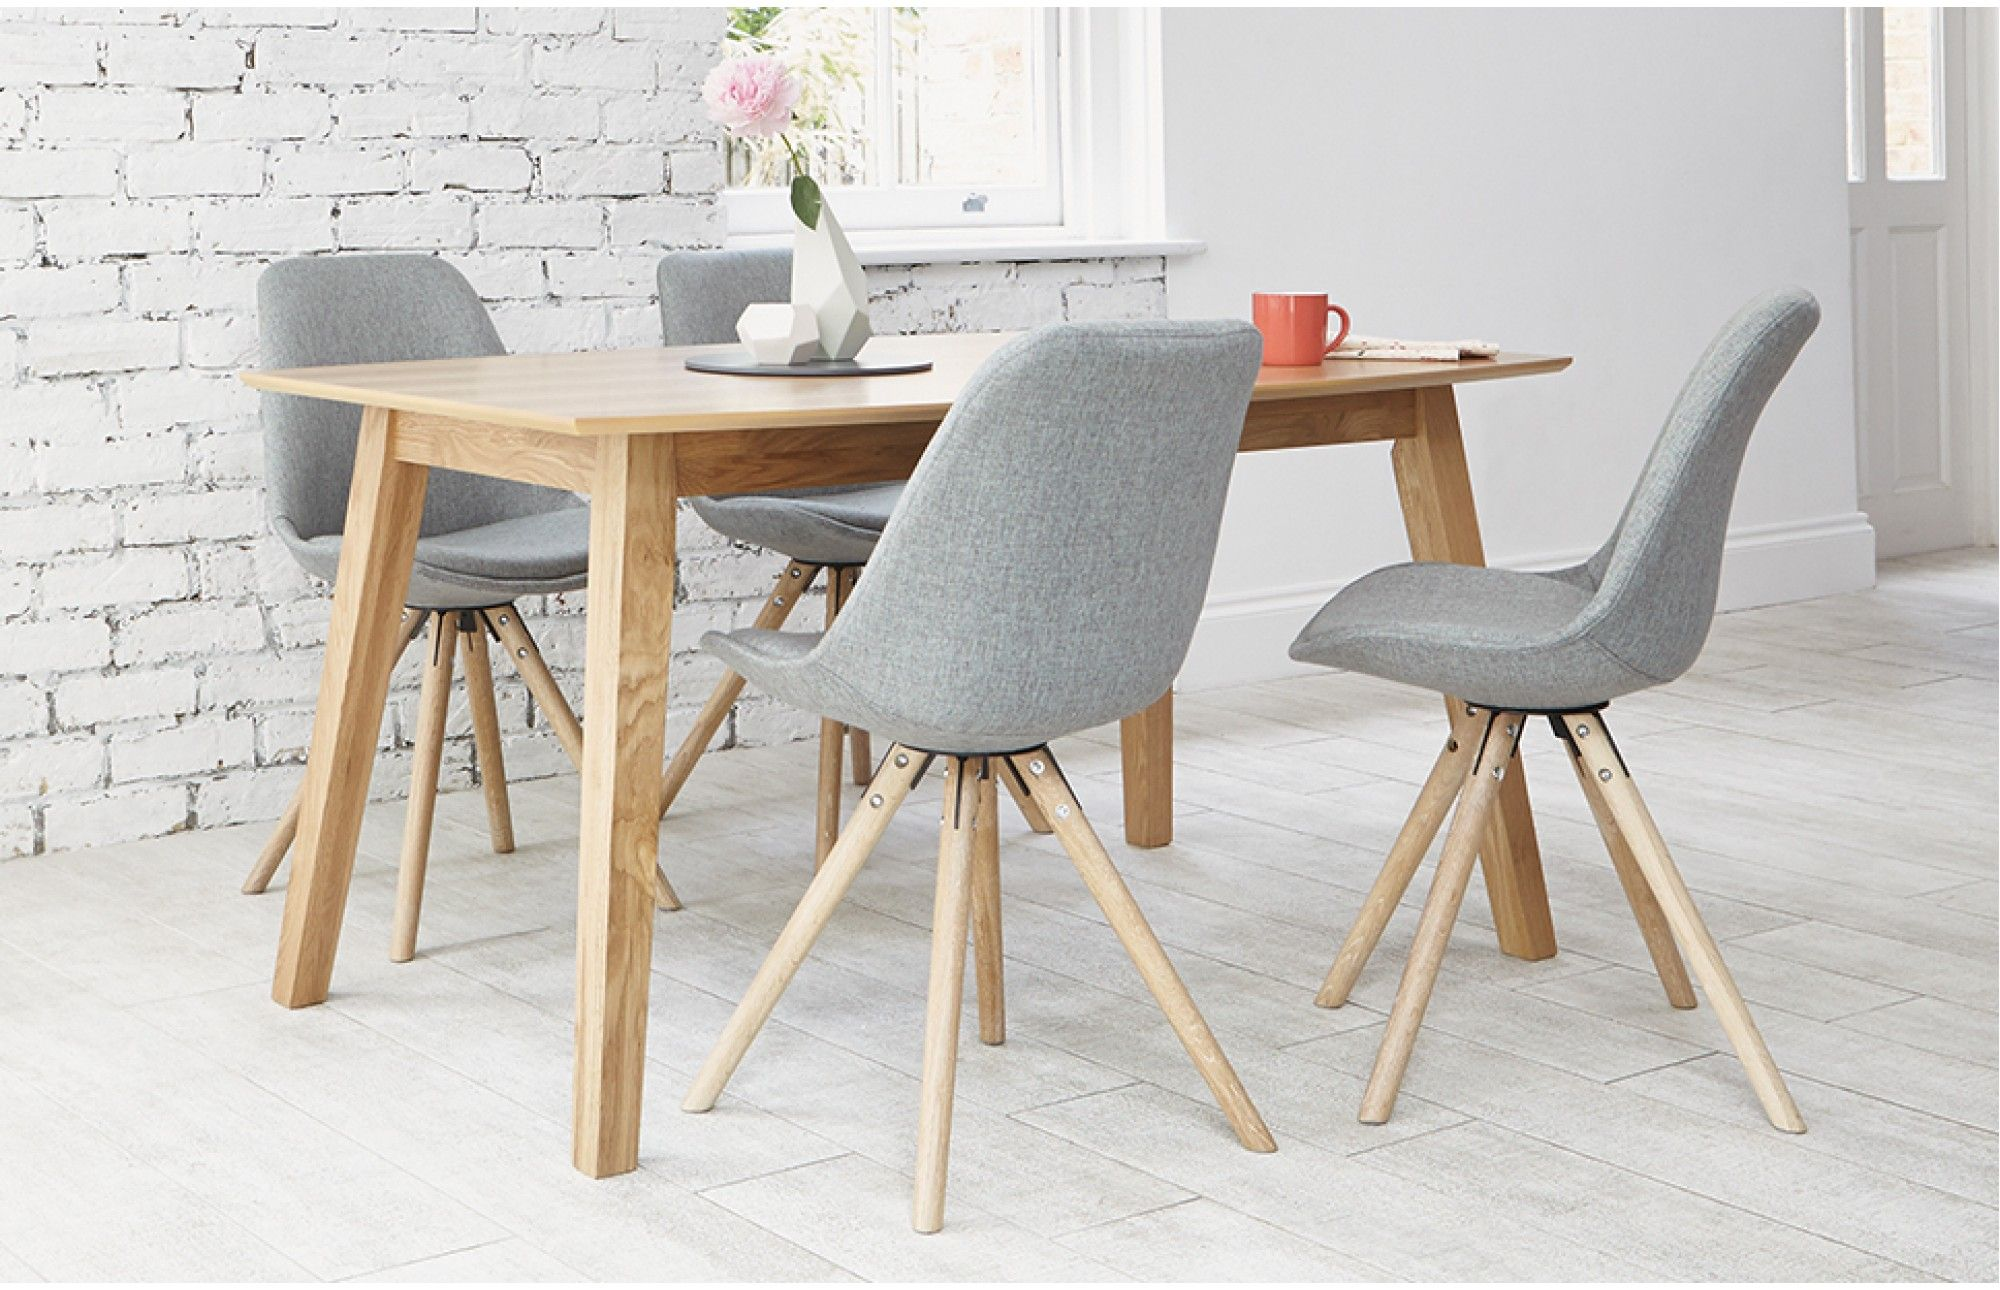 Upgrade Your Living Space With This Designer 4 Seater Dining Set With Upholstered Grey Minimalist Dining Room Minimalist Dining Room Small Dining Table Setting